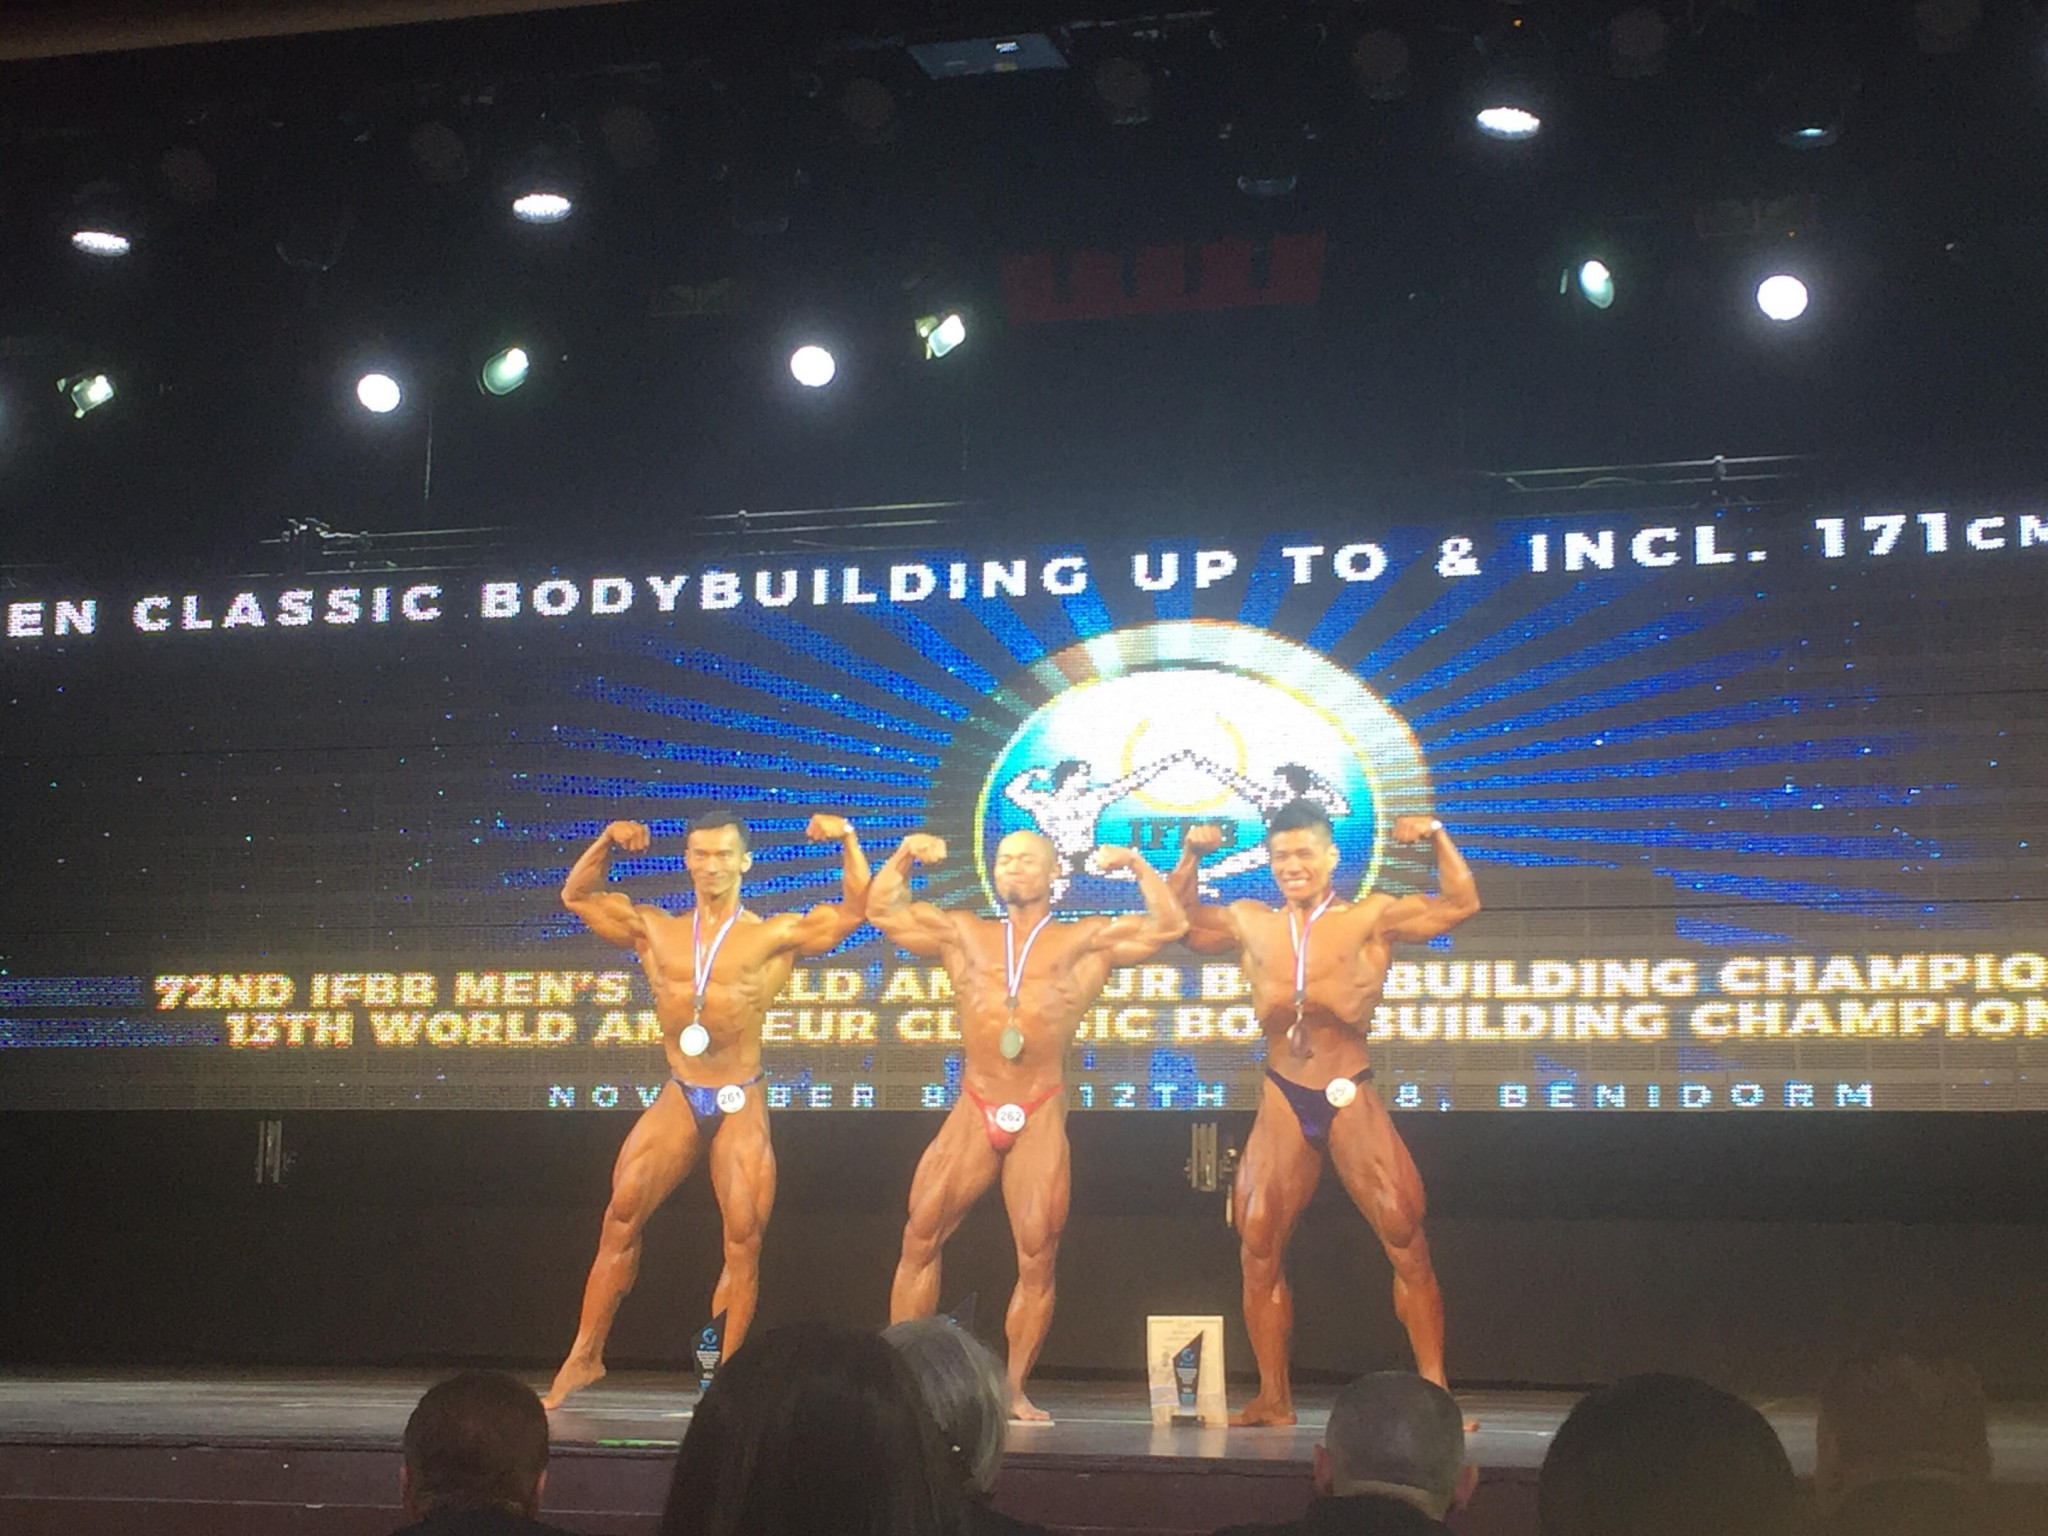 Chinese and Iranian success on first day of IFBB Men's World Bodybuilding Championships